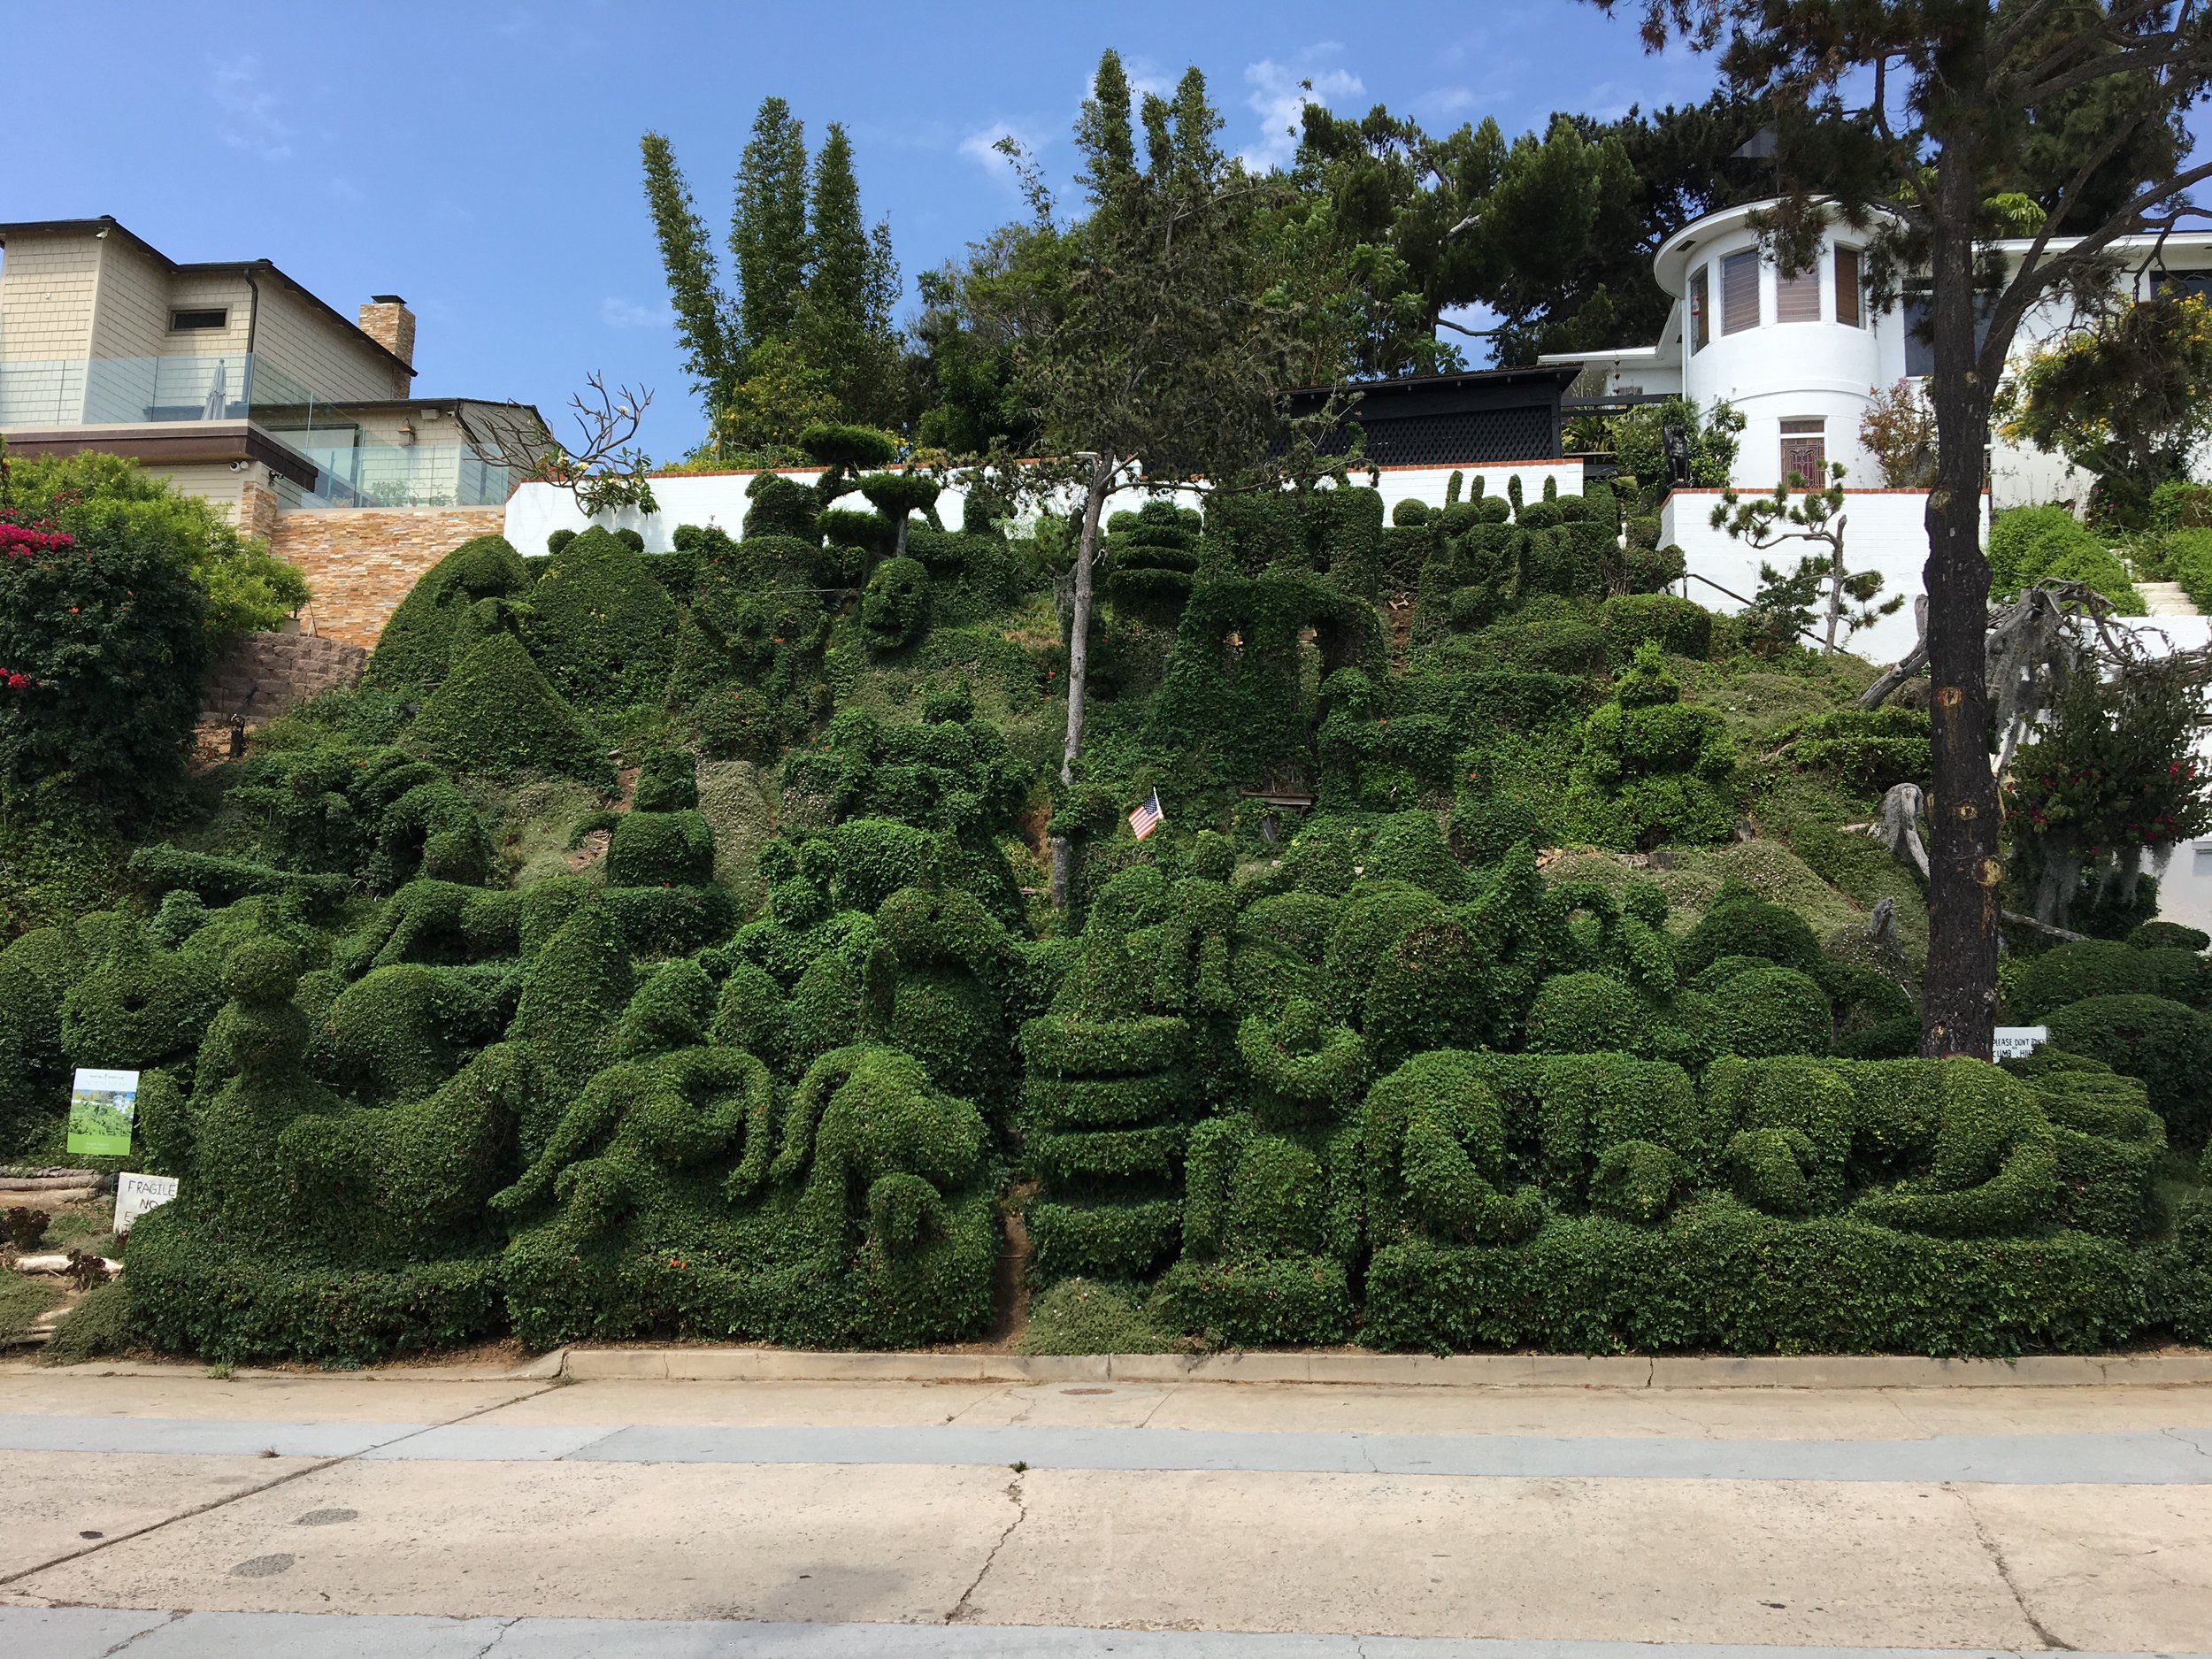 Harper's Topiary Garden in Mission Hills. Photo by Ranger Holly.